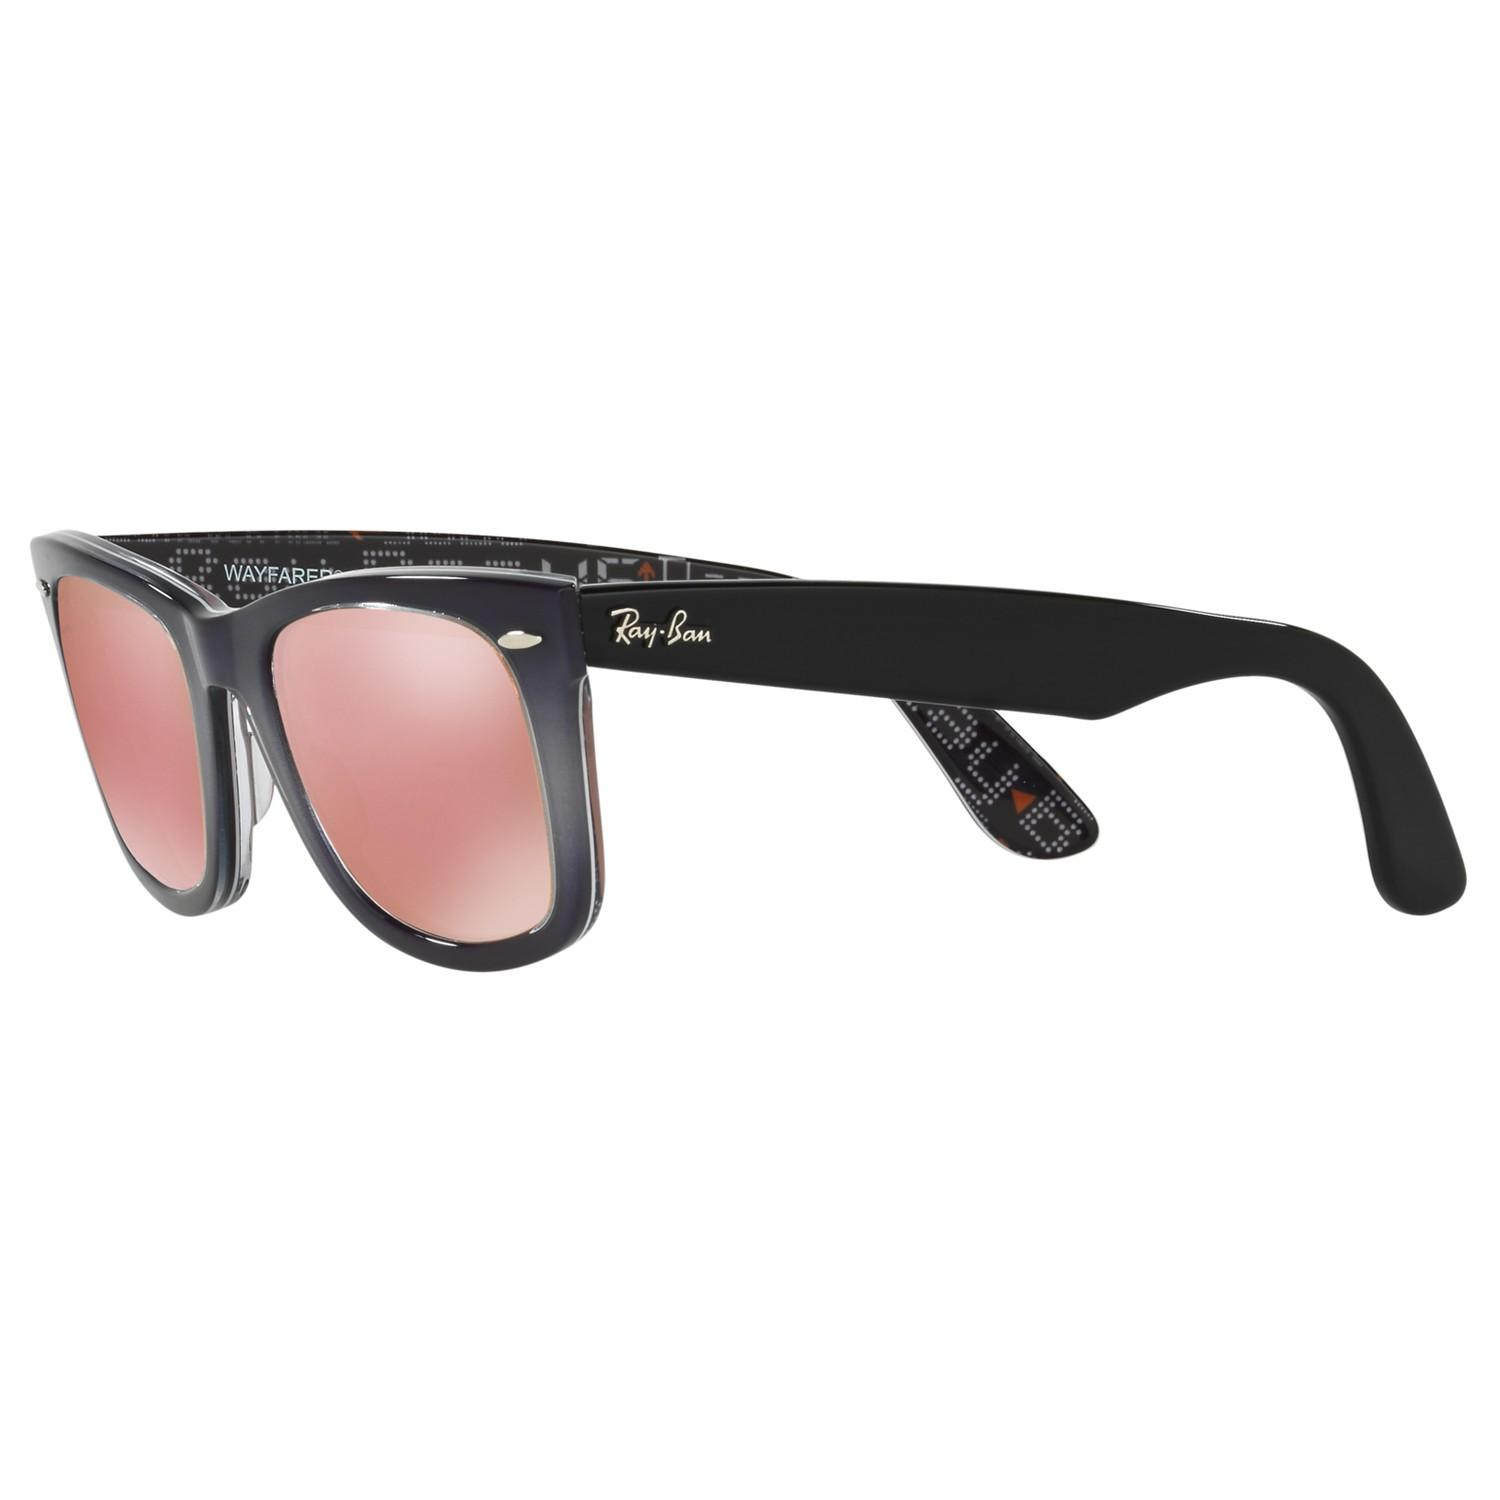 3f45885176 Ray Ban Rb2132 John Lewis « One More Soul